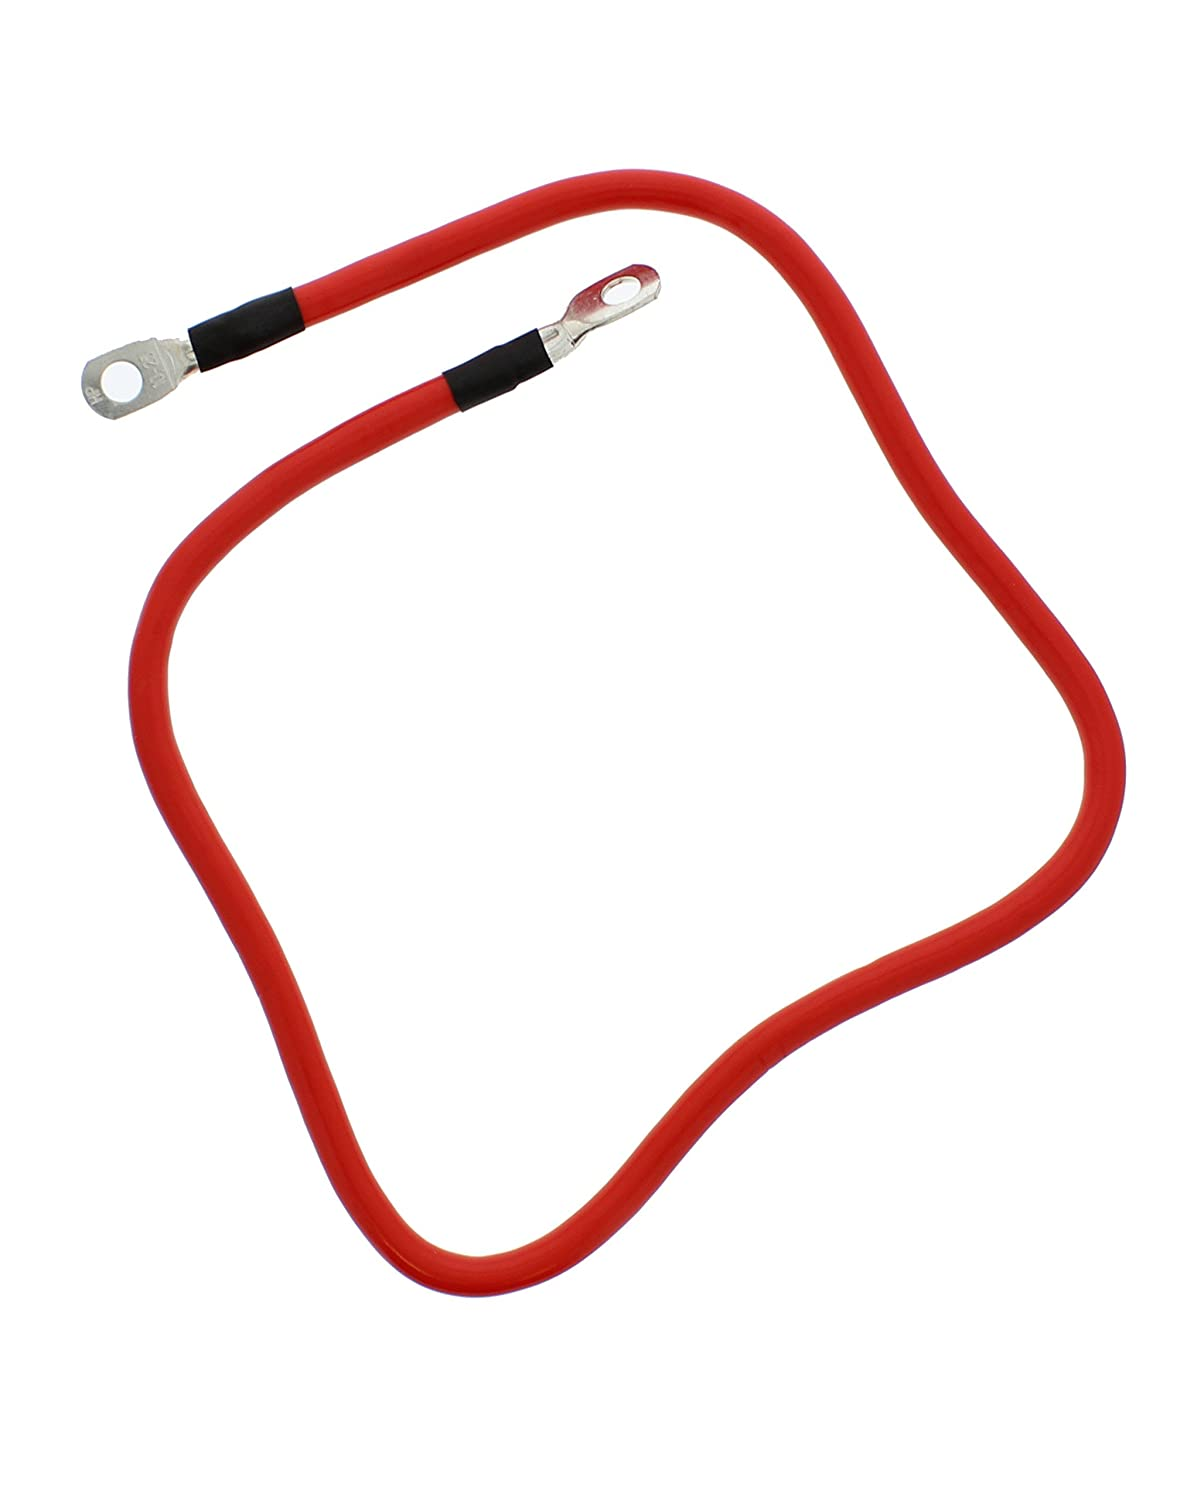 ABN Red 3//8 Stud 12 Long 2-Gauge Marine Battery Cable /& Tinned Lug Assembly Club Car 7295 EZ Go 11888-G2 14610-G1